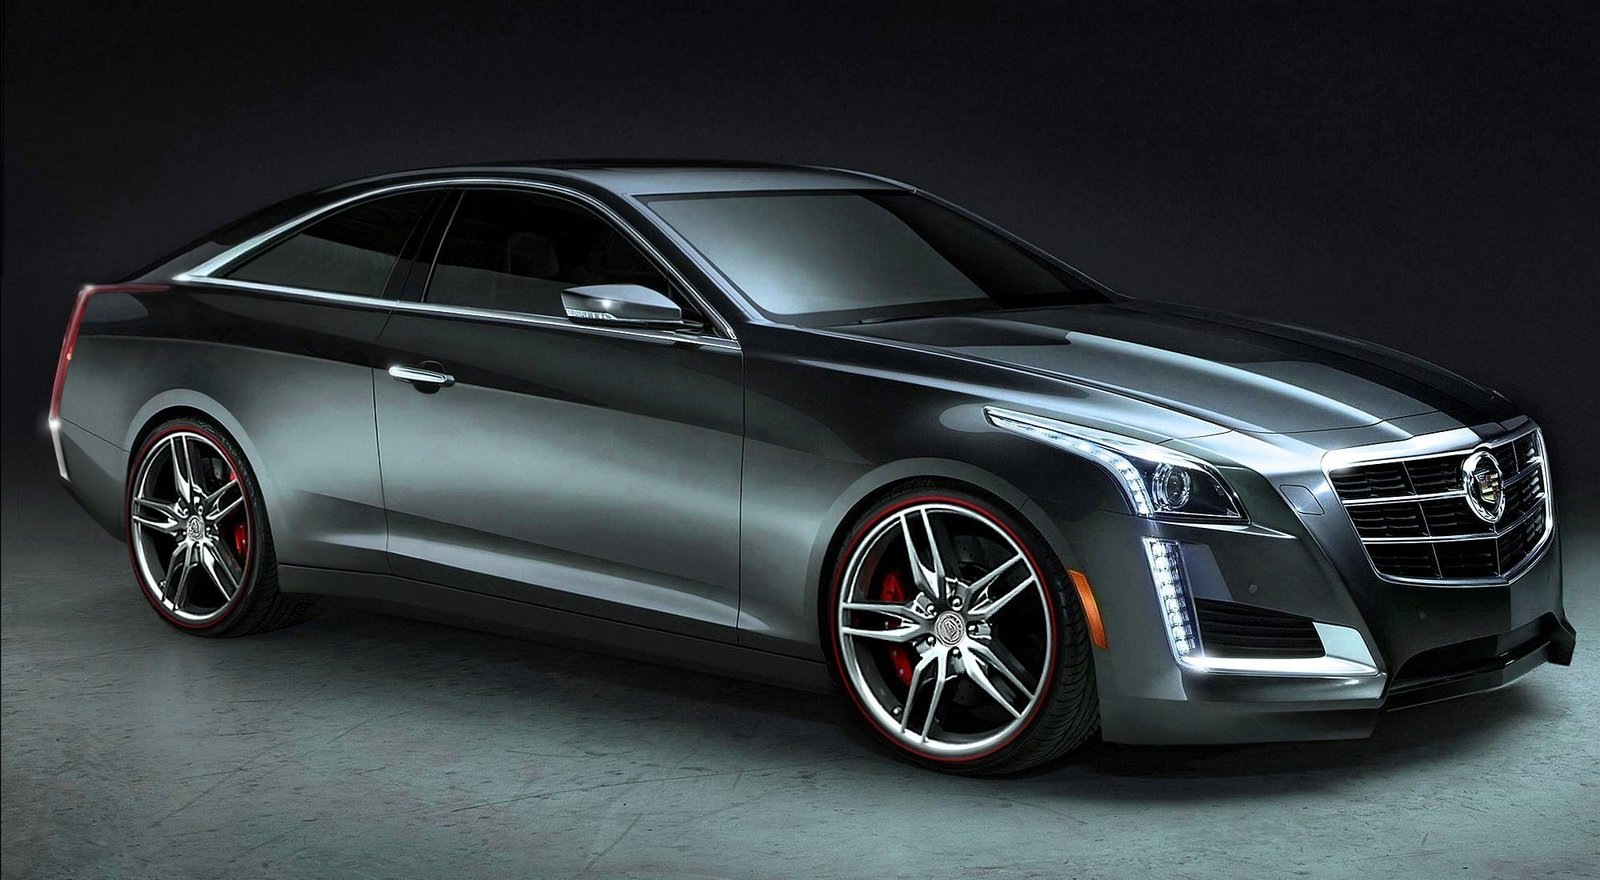 2015 Cadillac Cts-v Coupe #16